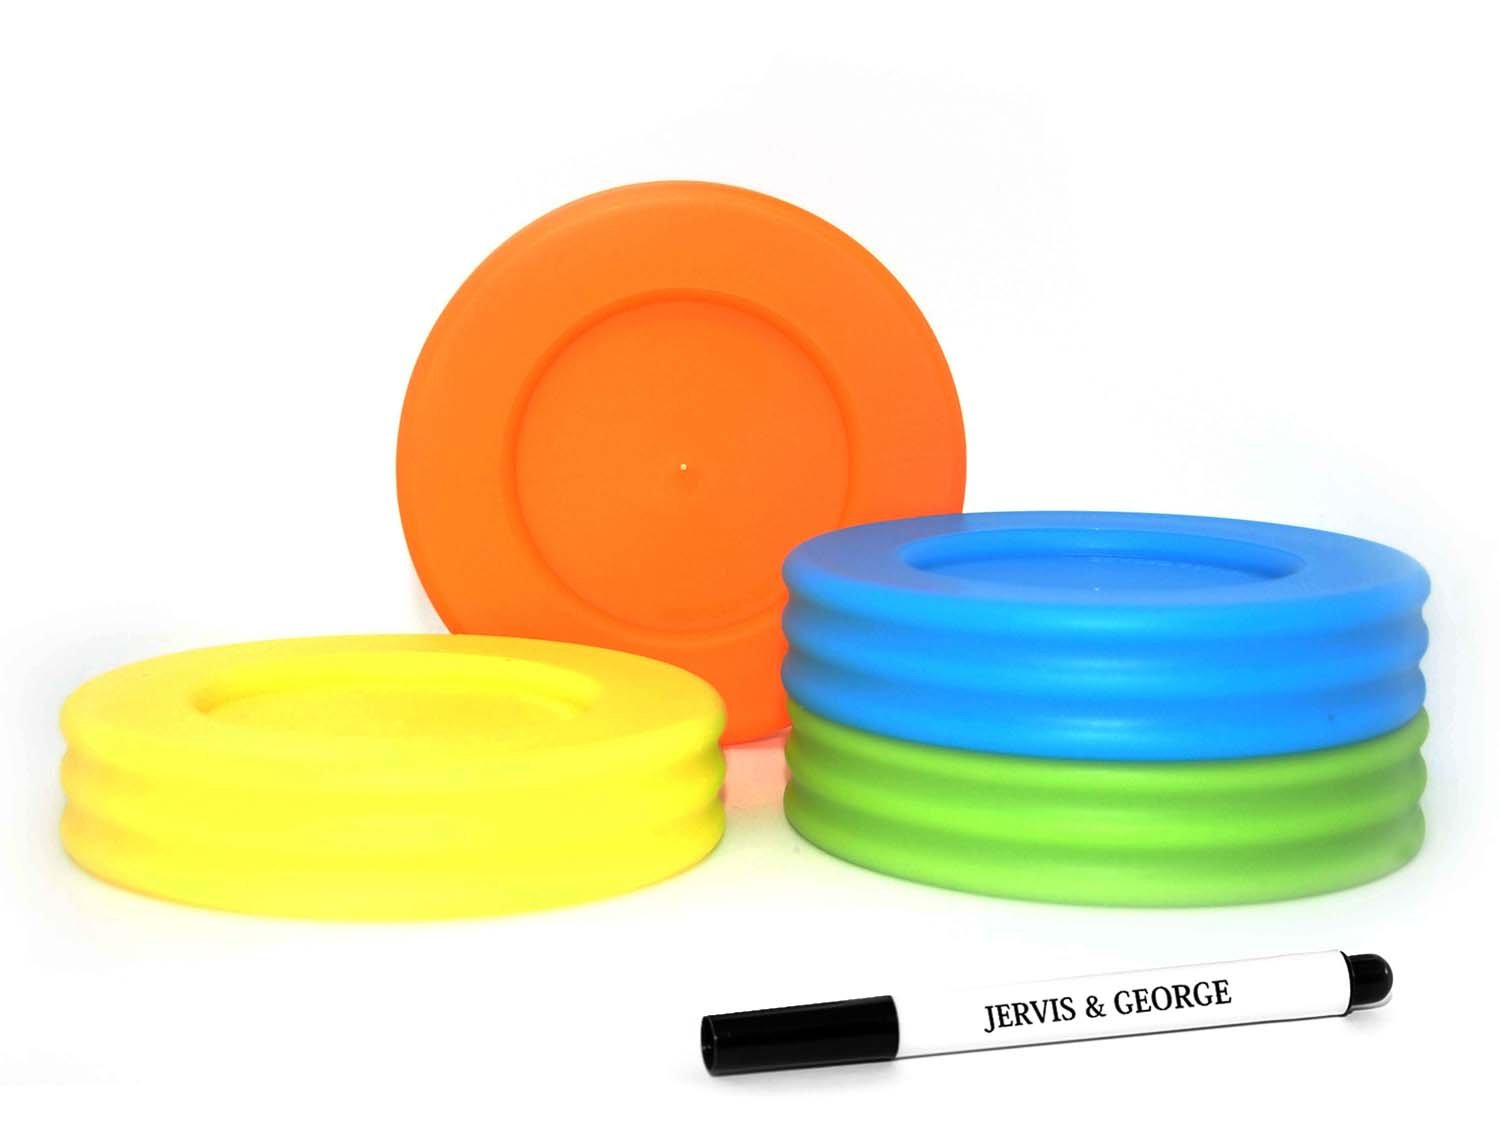 Wide Mouth Mason Jar Lids - Compatible with Wide Mouthed Size Ball Jars - Reusable and Leak Proof Plastic Lids are BPA Free - Includes Pen for Marking - Green, Orange, Yellow & Blue - Pack of 4